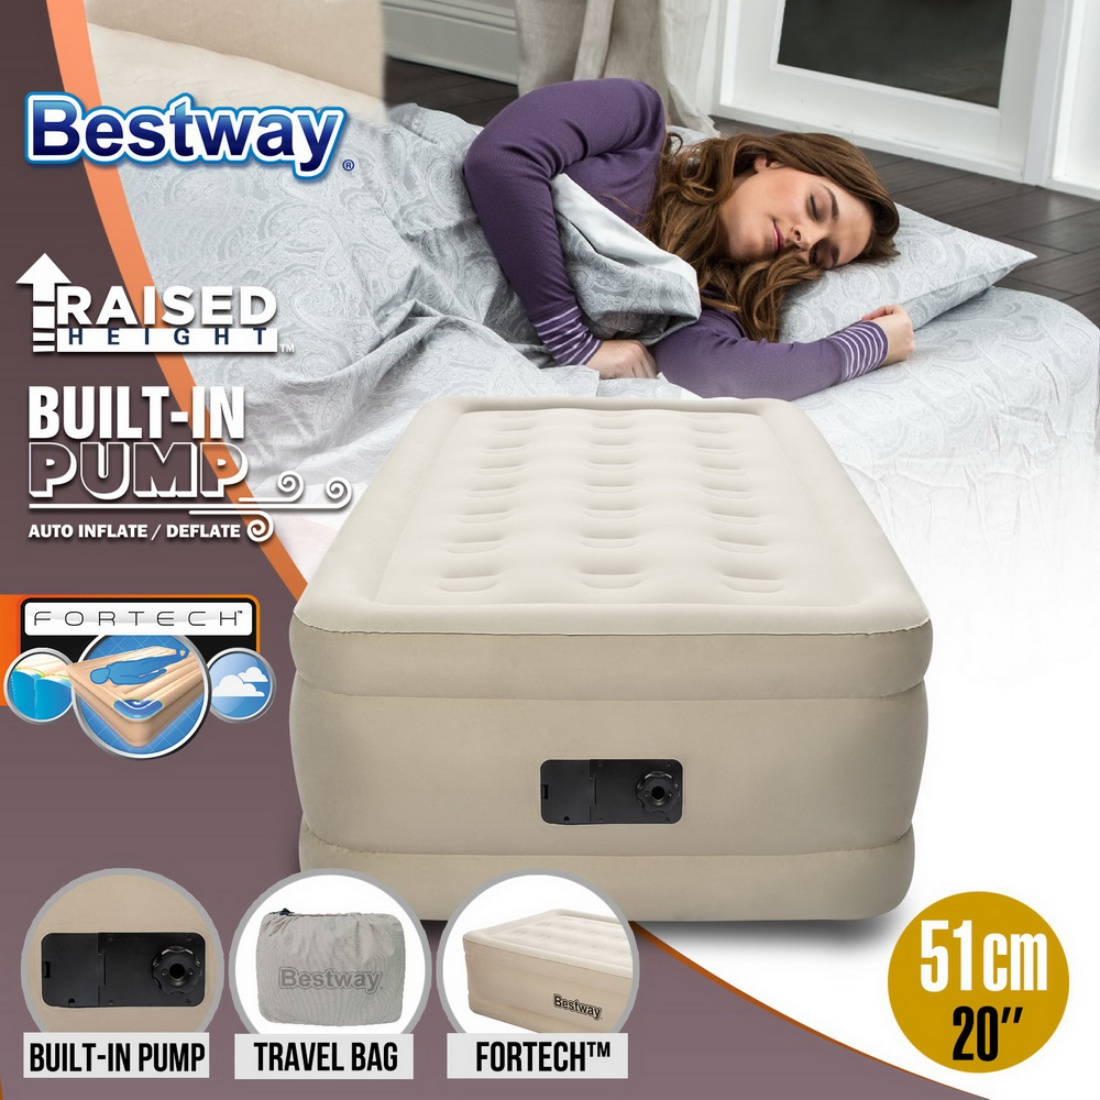 Bestway Inflatable Single Air Bed Home Blow Up Mattress Built-in Pump Camping